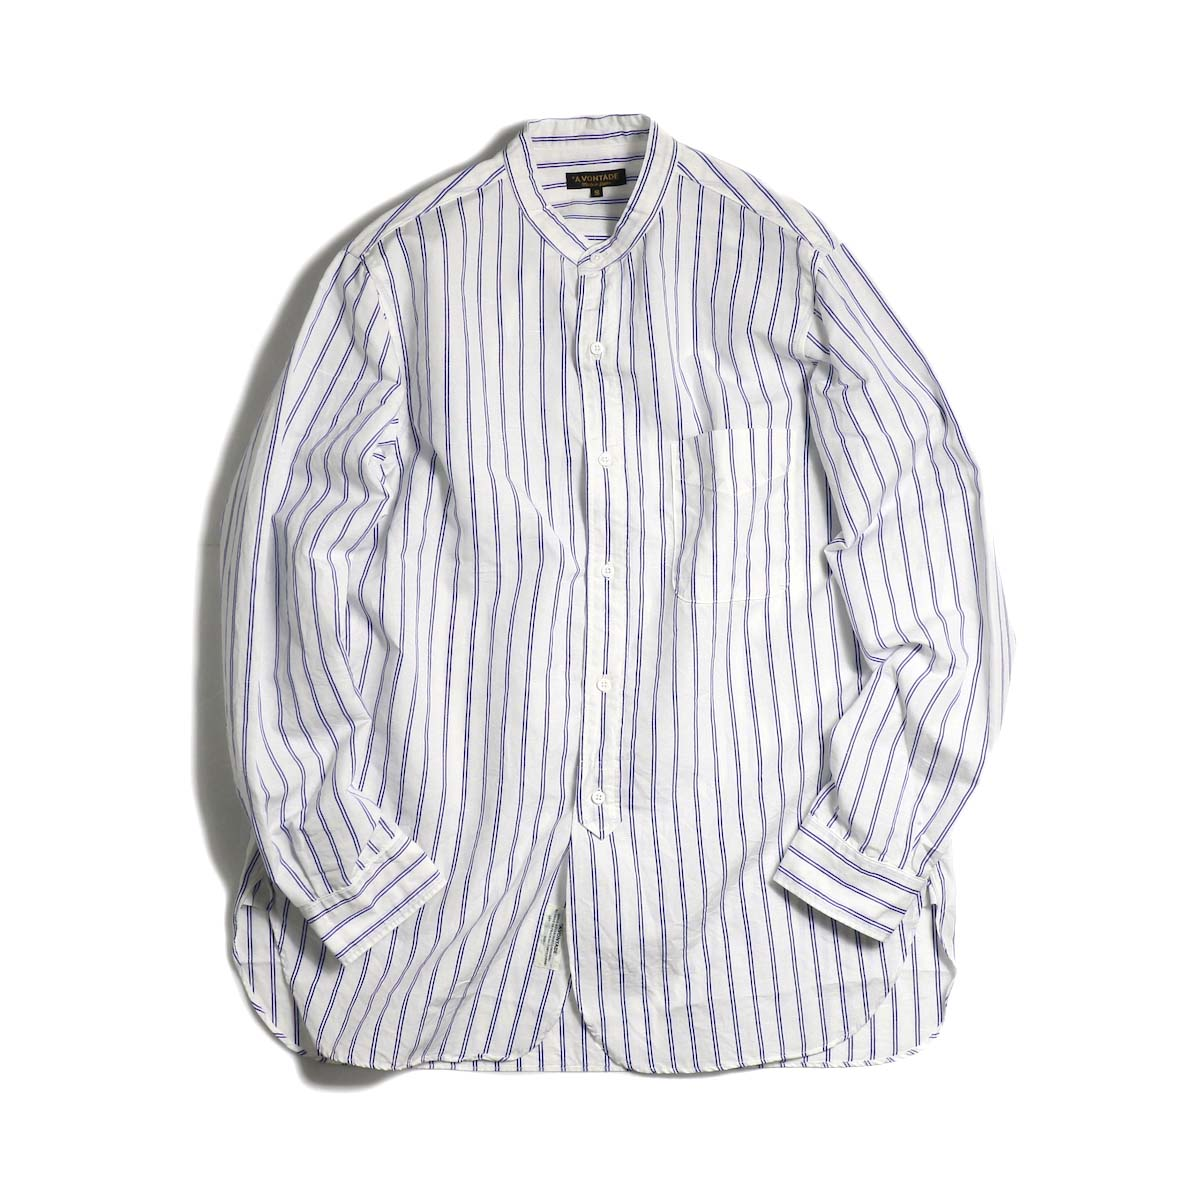 A VONTADE / Banded Collar Shirts -Blue Stripe